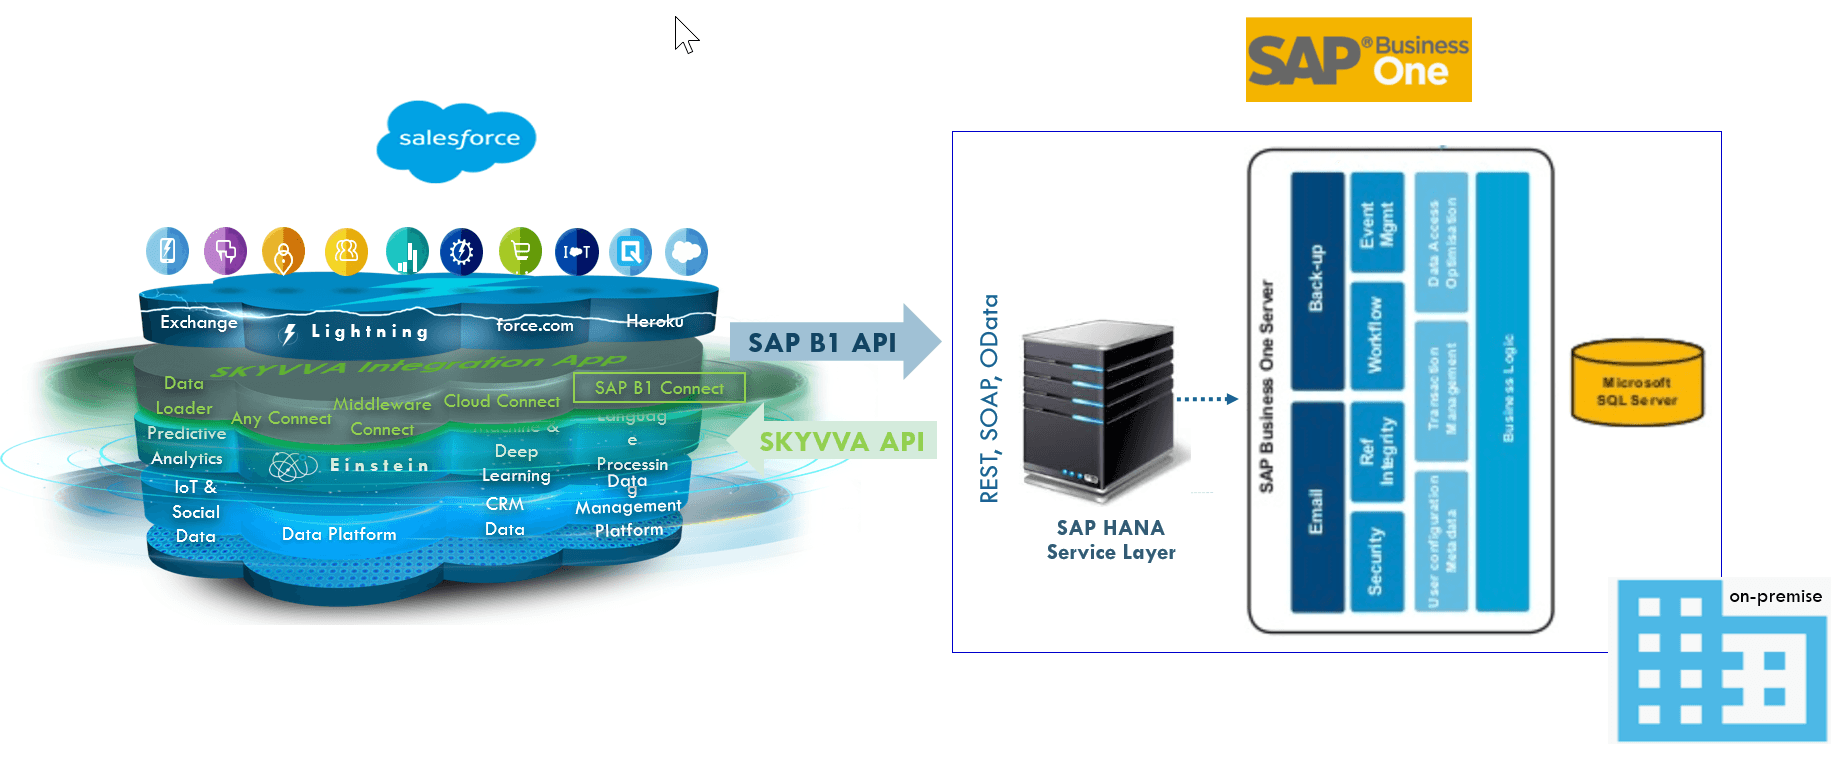 SAP Business One on-premise